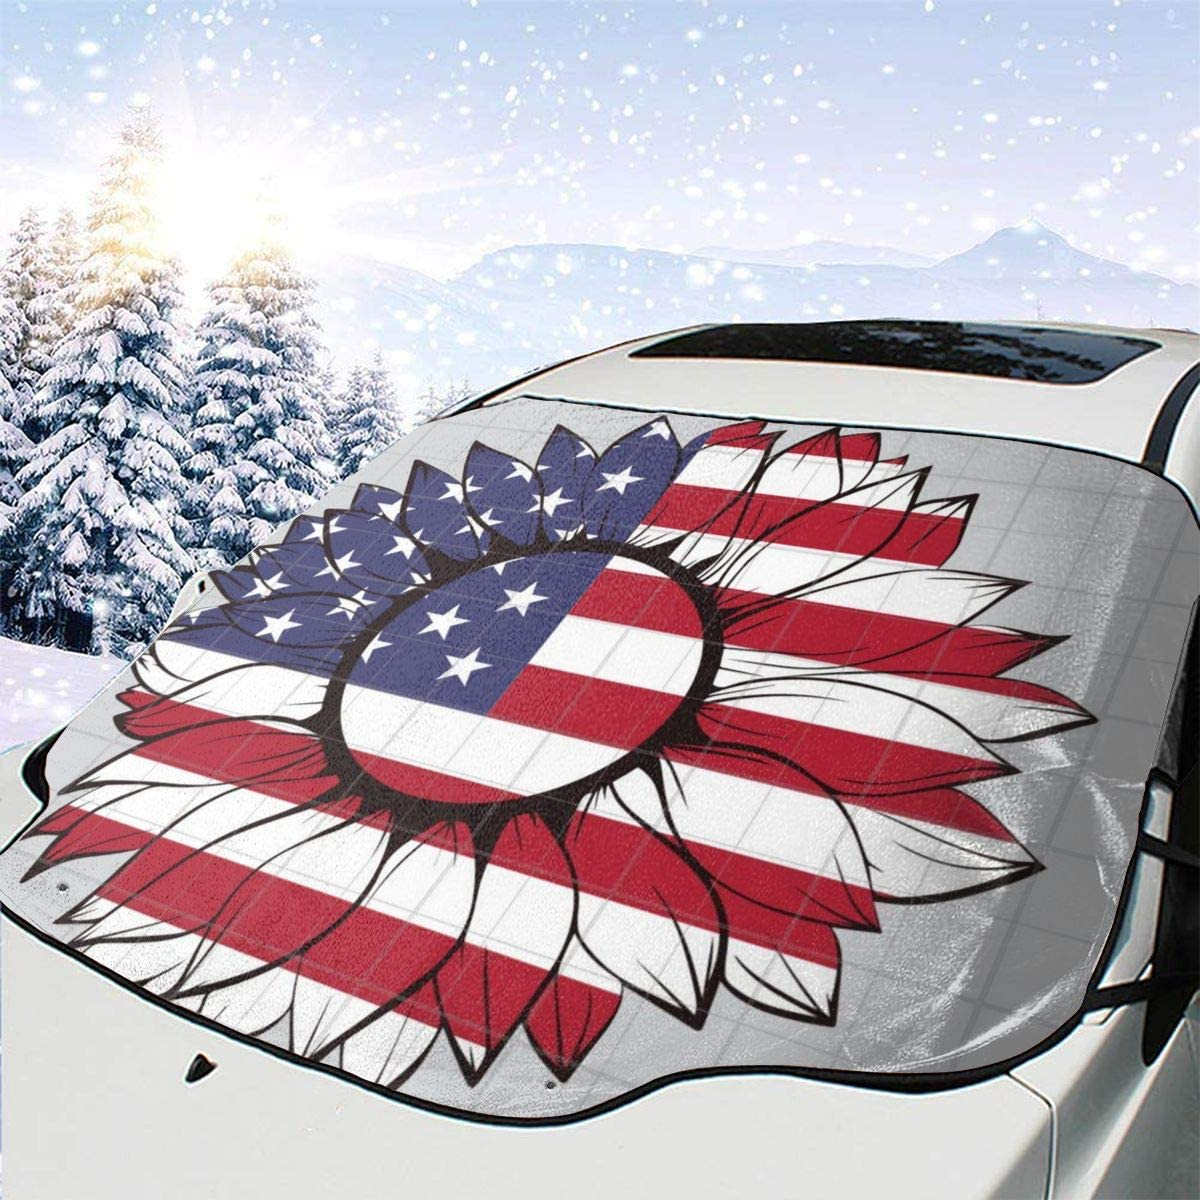 THONFIRE Car Front Window Windshield Ice Sunshade American Flag Sunflower Cover Sand Proof Blocks UV Rays Damage Free Visor Protector Automotive Autumn Heatshield